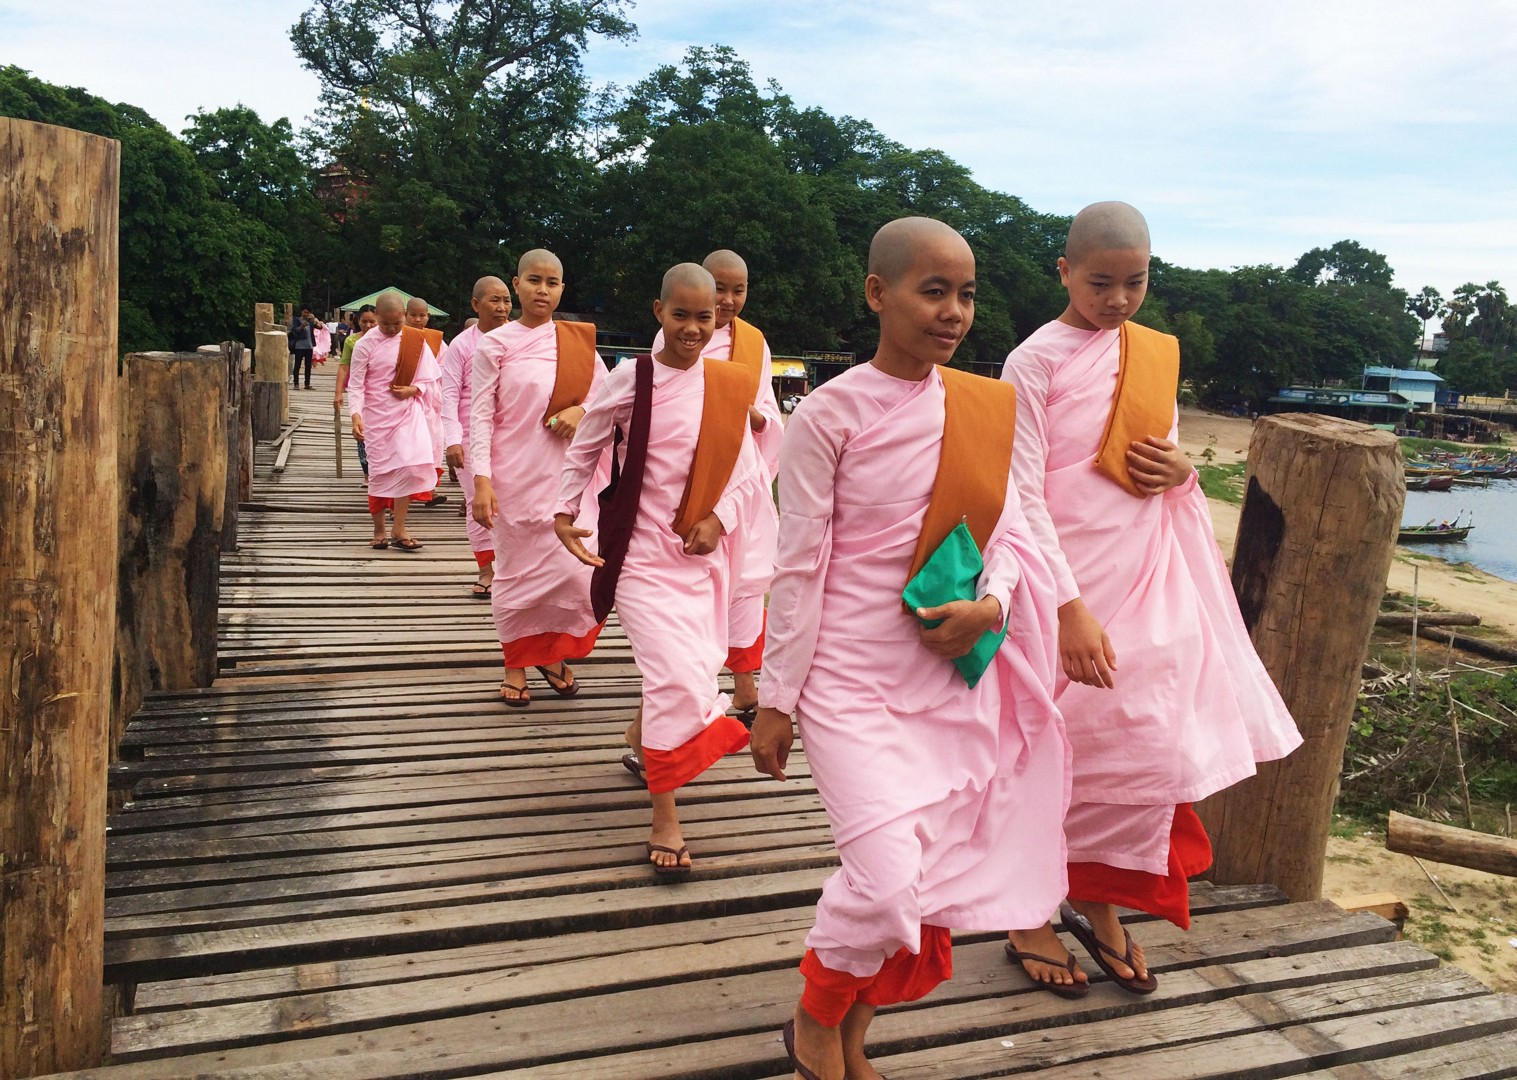 meet-locals-burma-group-cycling-holiday.jpg - Myanmar (Burma) - Bagan and Beyond - Cycling Adventures